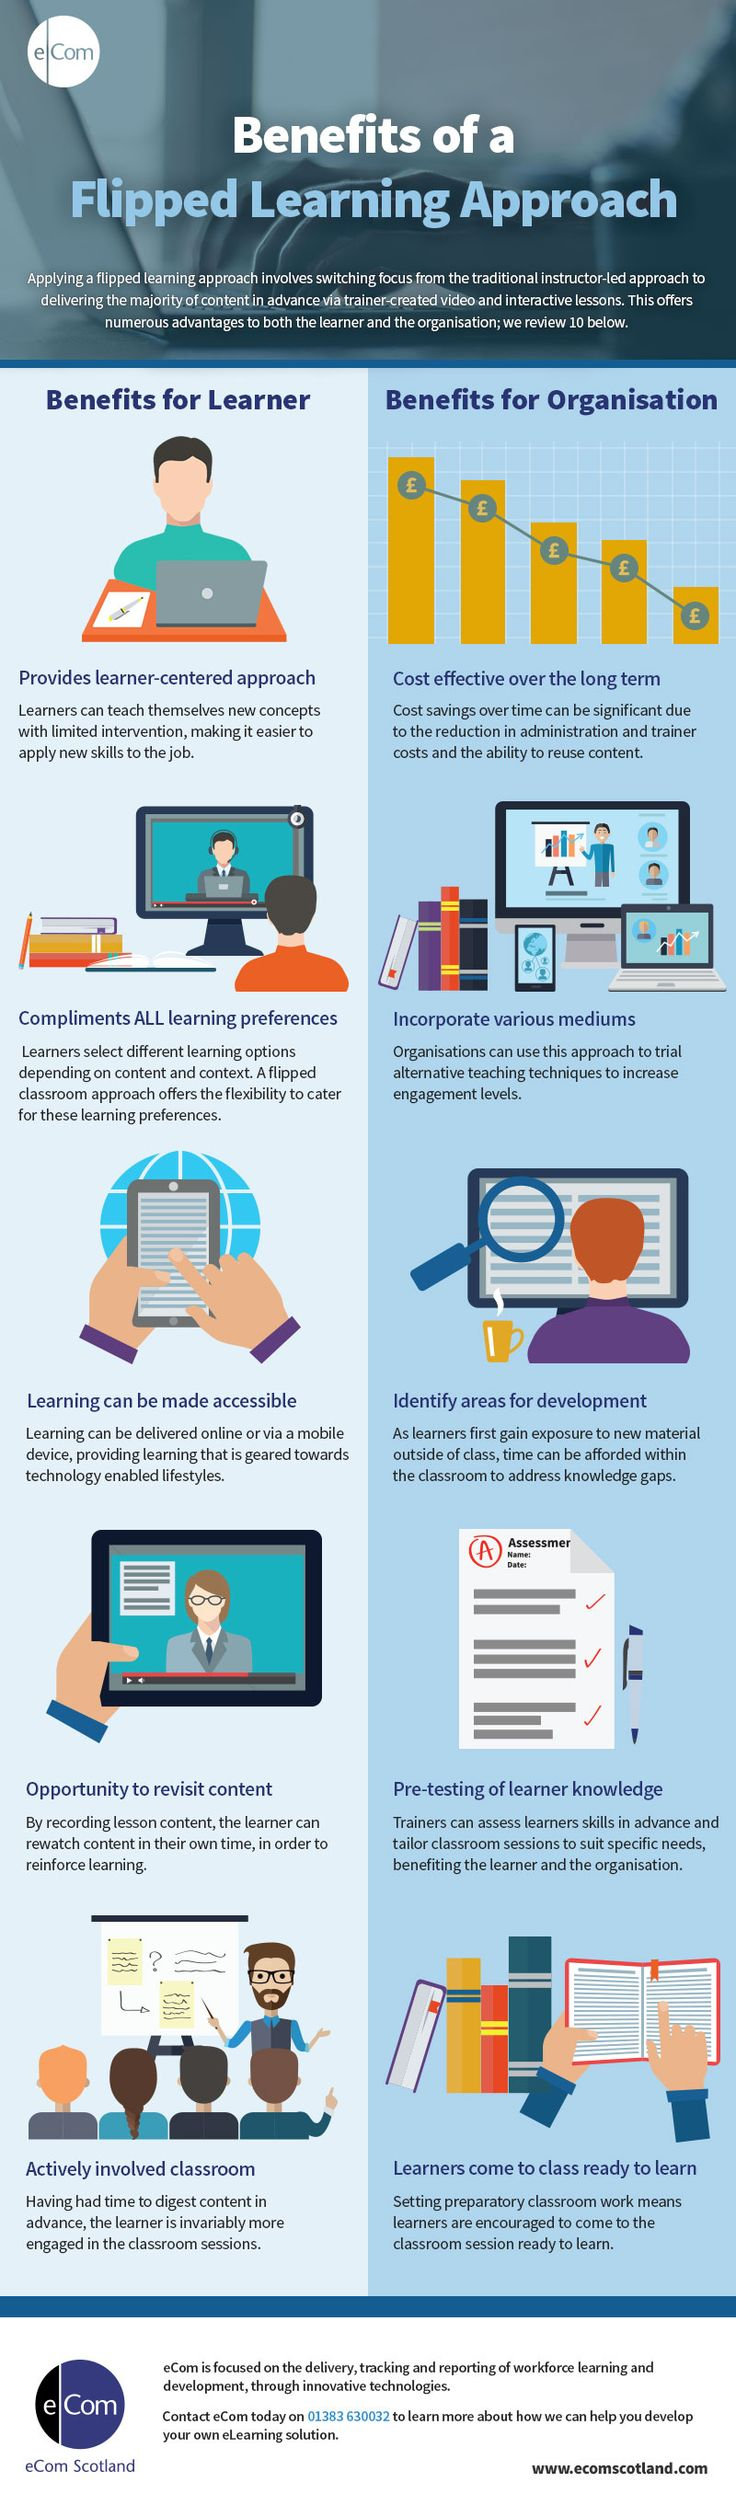 Flipped Learning Approach: Benefits To Learner And Organisation Infographic - http://elearninginfographics.com/flipped-learning-approach-infographic/